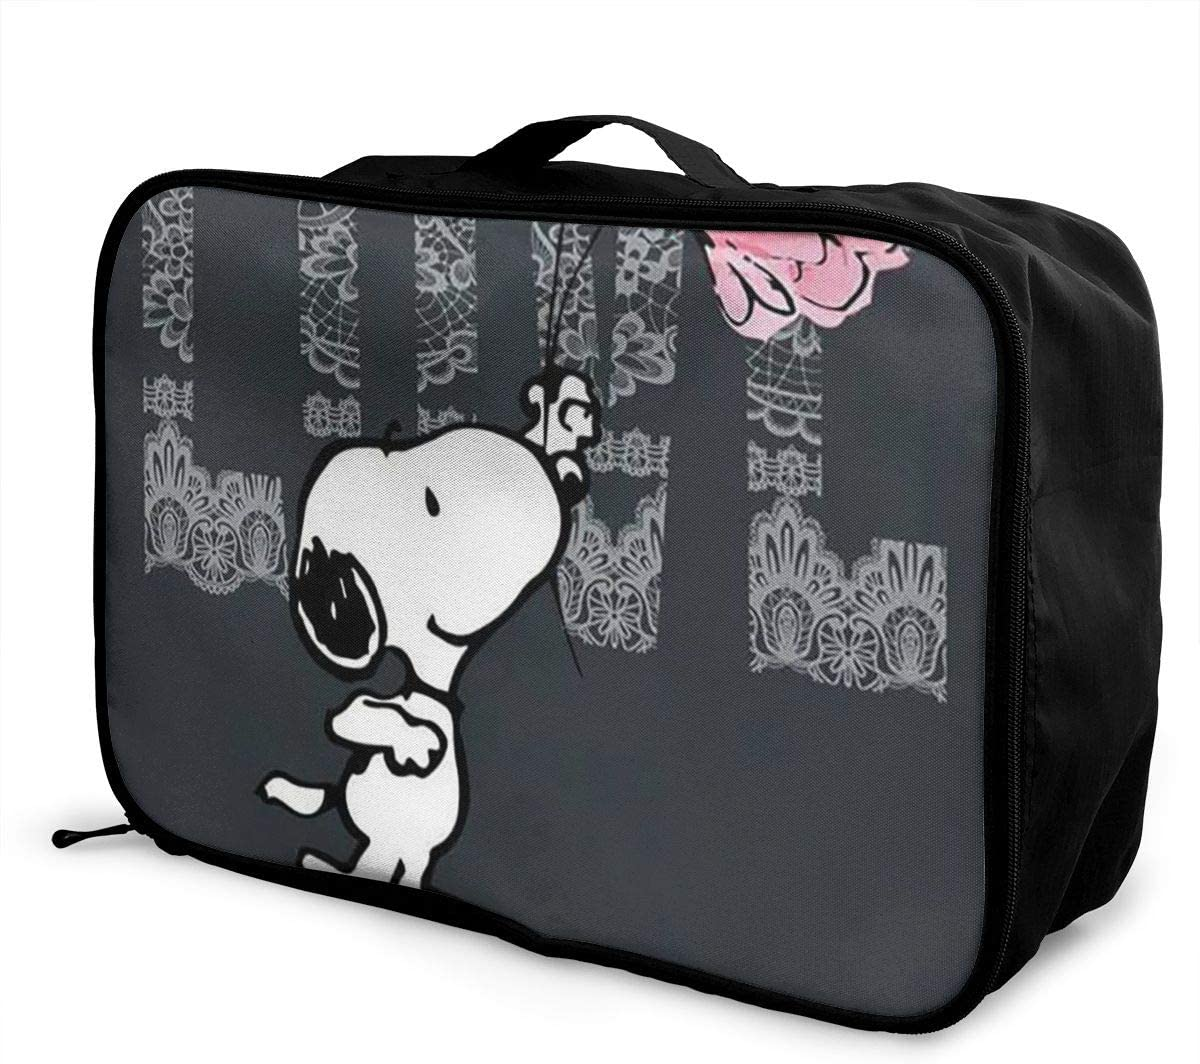 Black-and-white-flower Travel Duffel Bag Waterproof Fashion Lightweight Large Capacity Portable Luggage Bag